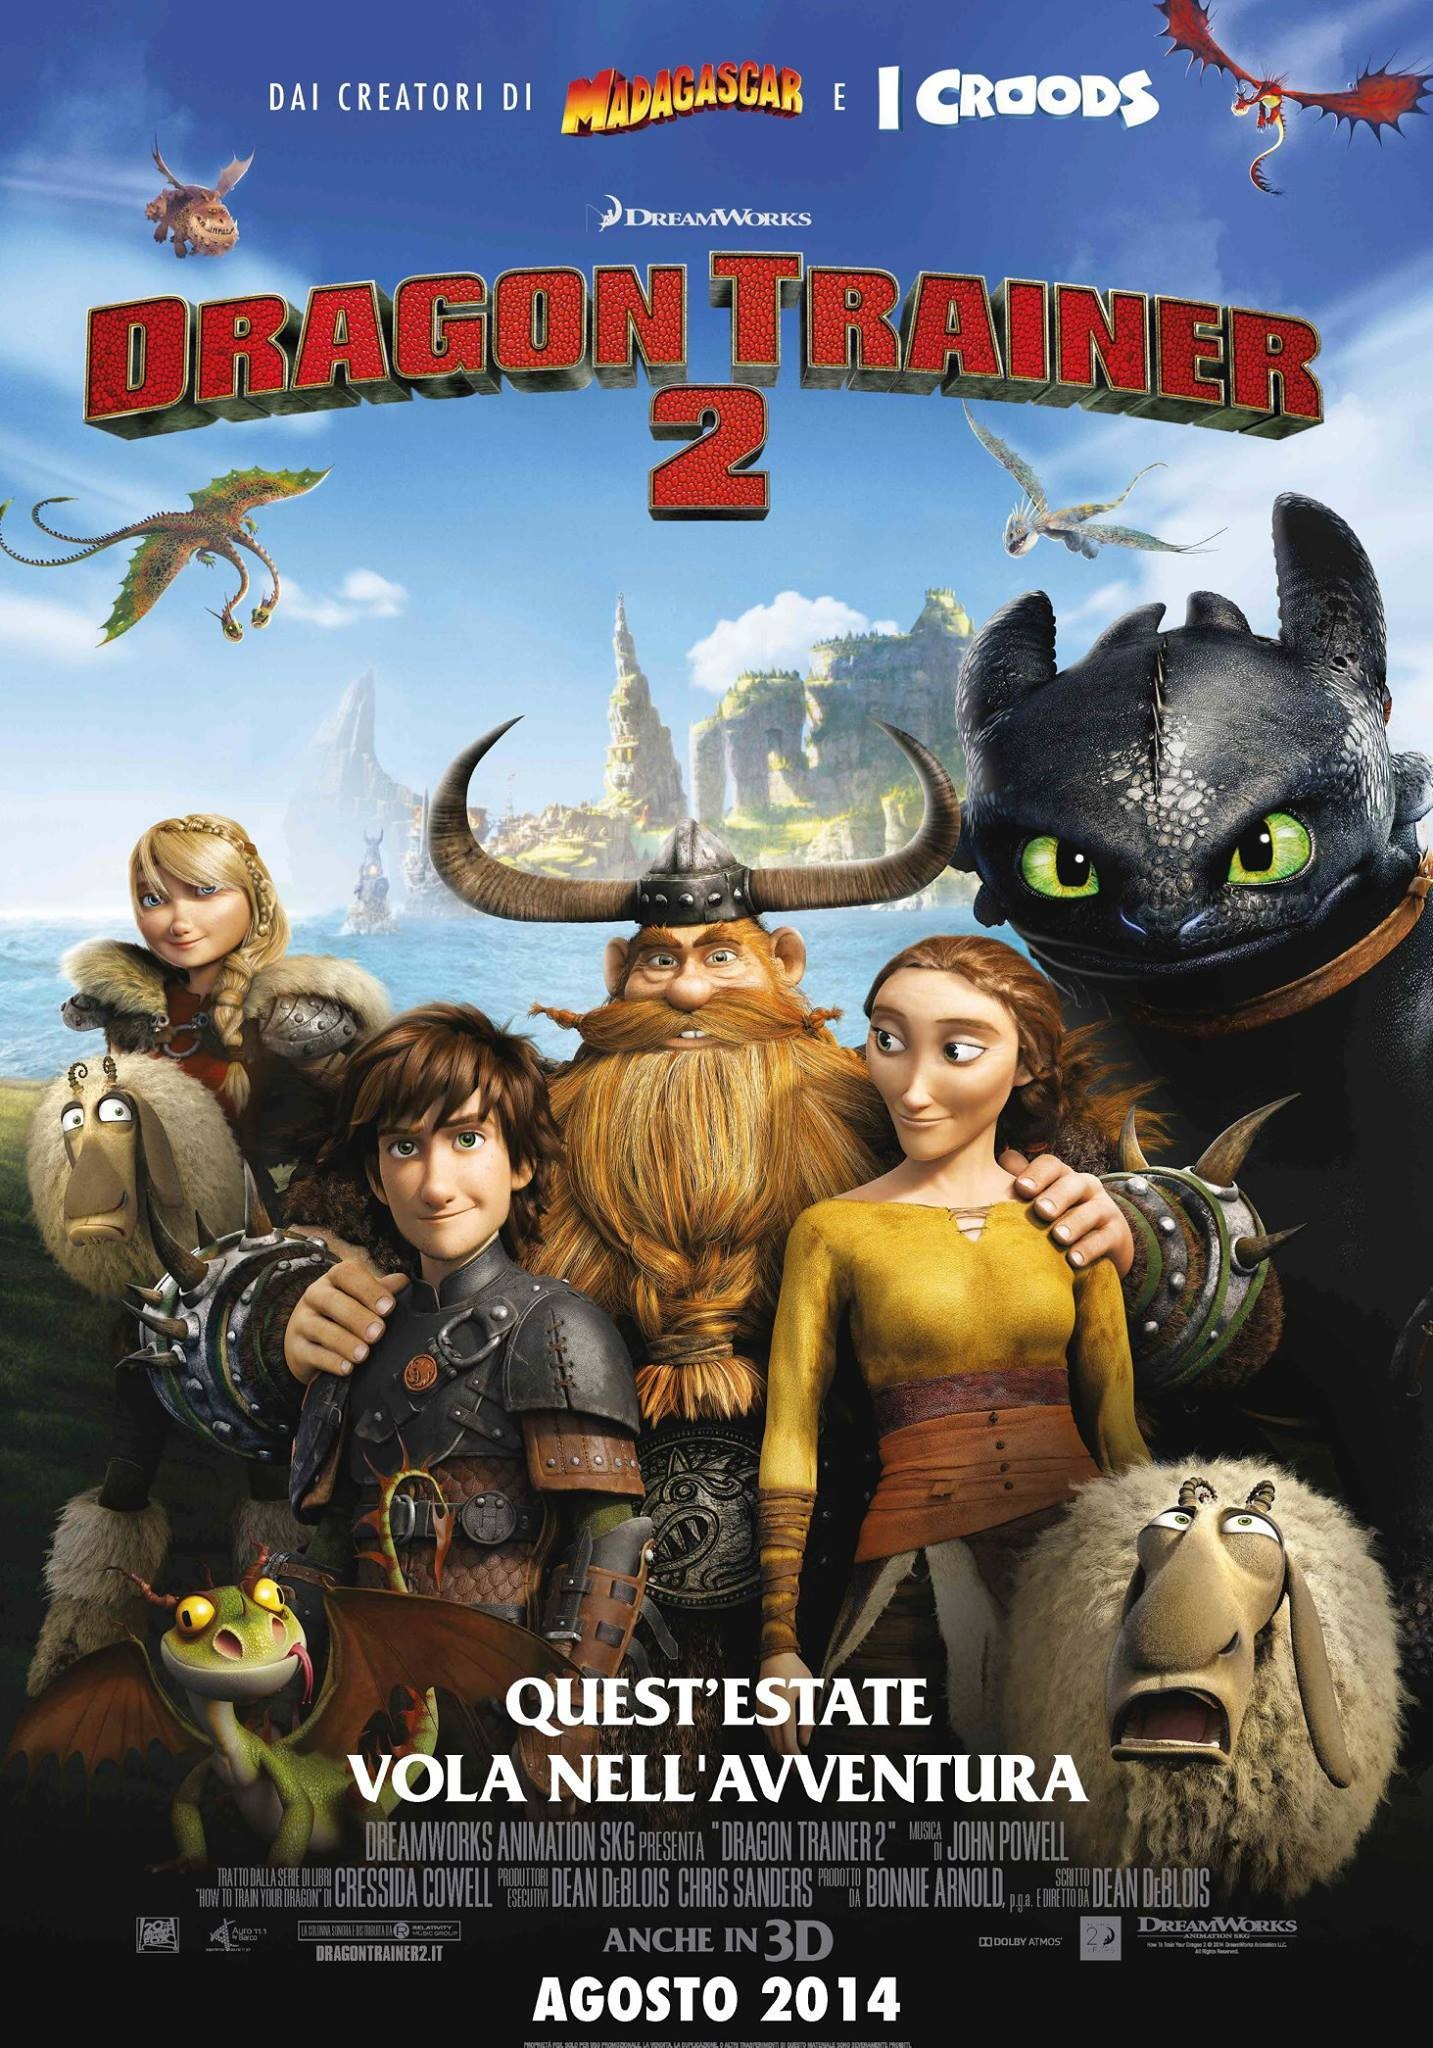 How to Train Your Dragon 2-Official Poster Banner PROMO XLG-11JUNHO2014-02